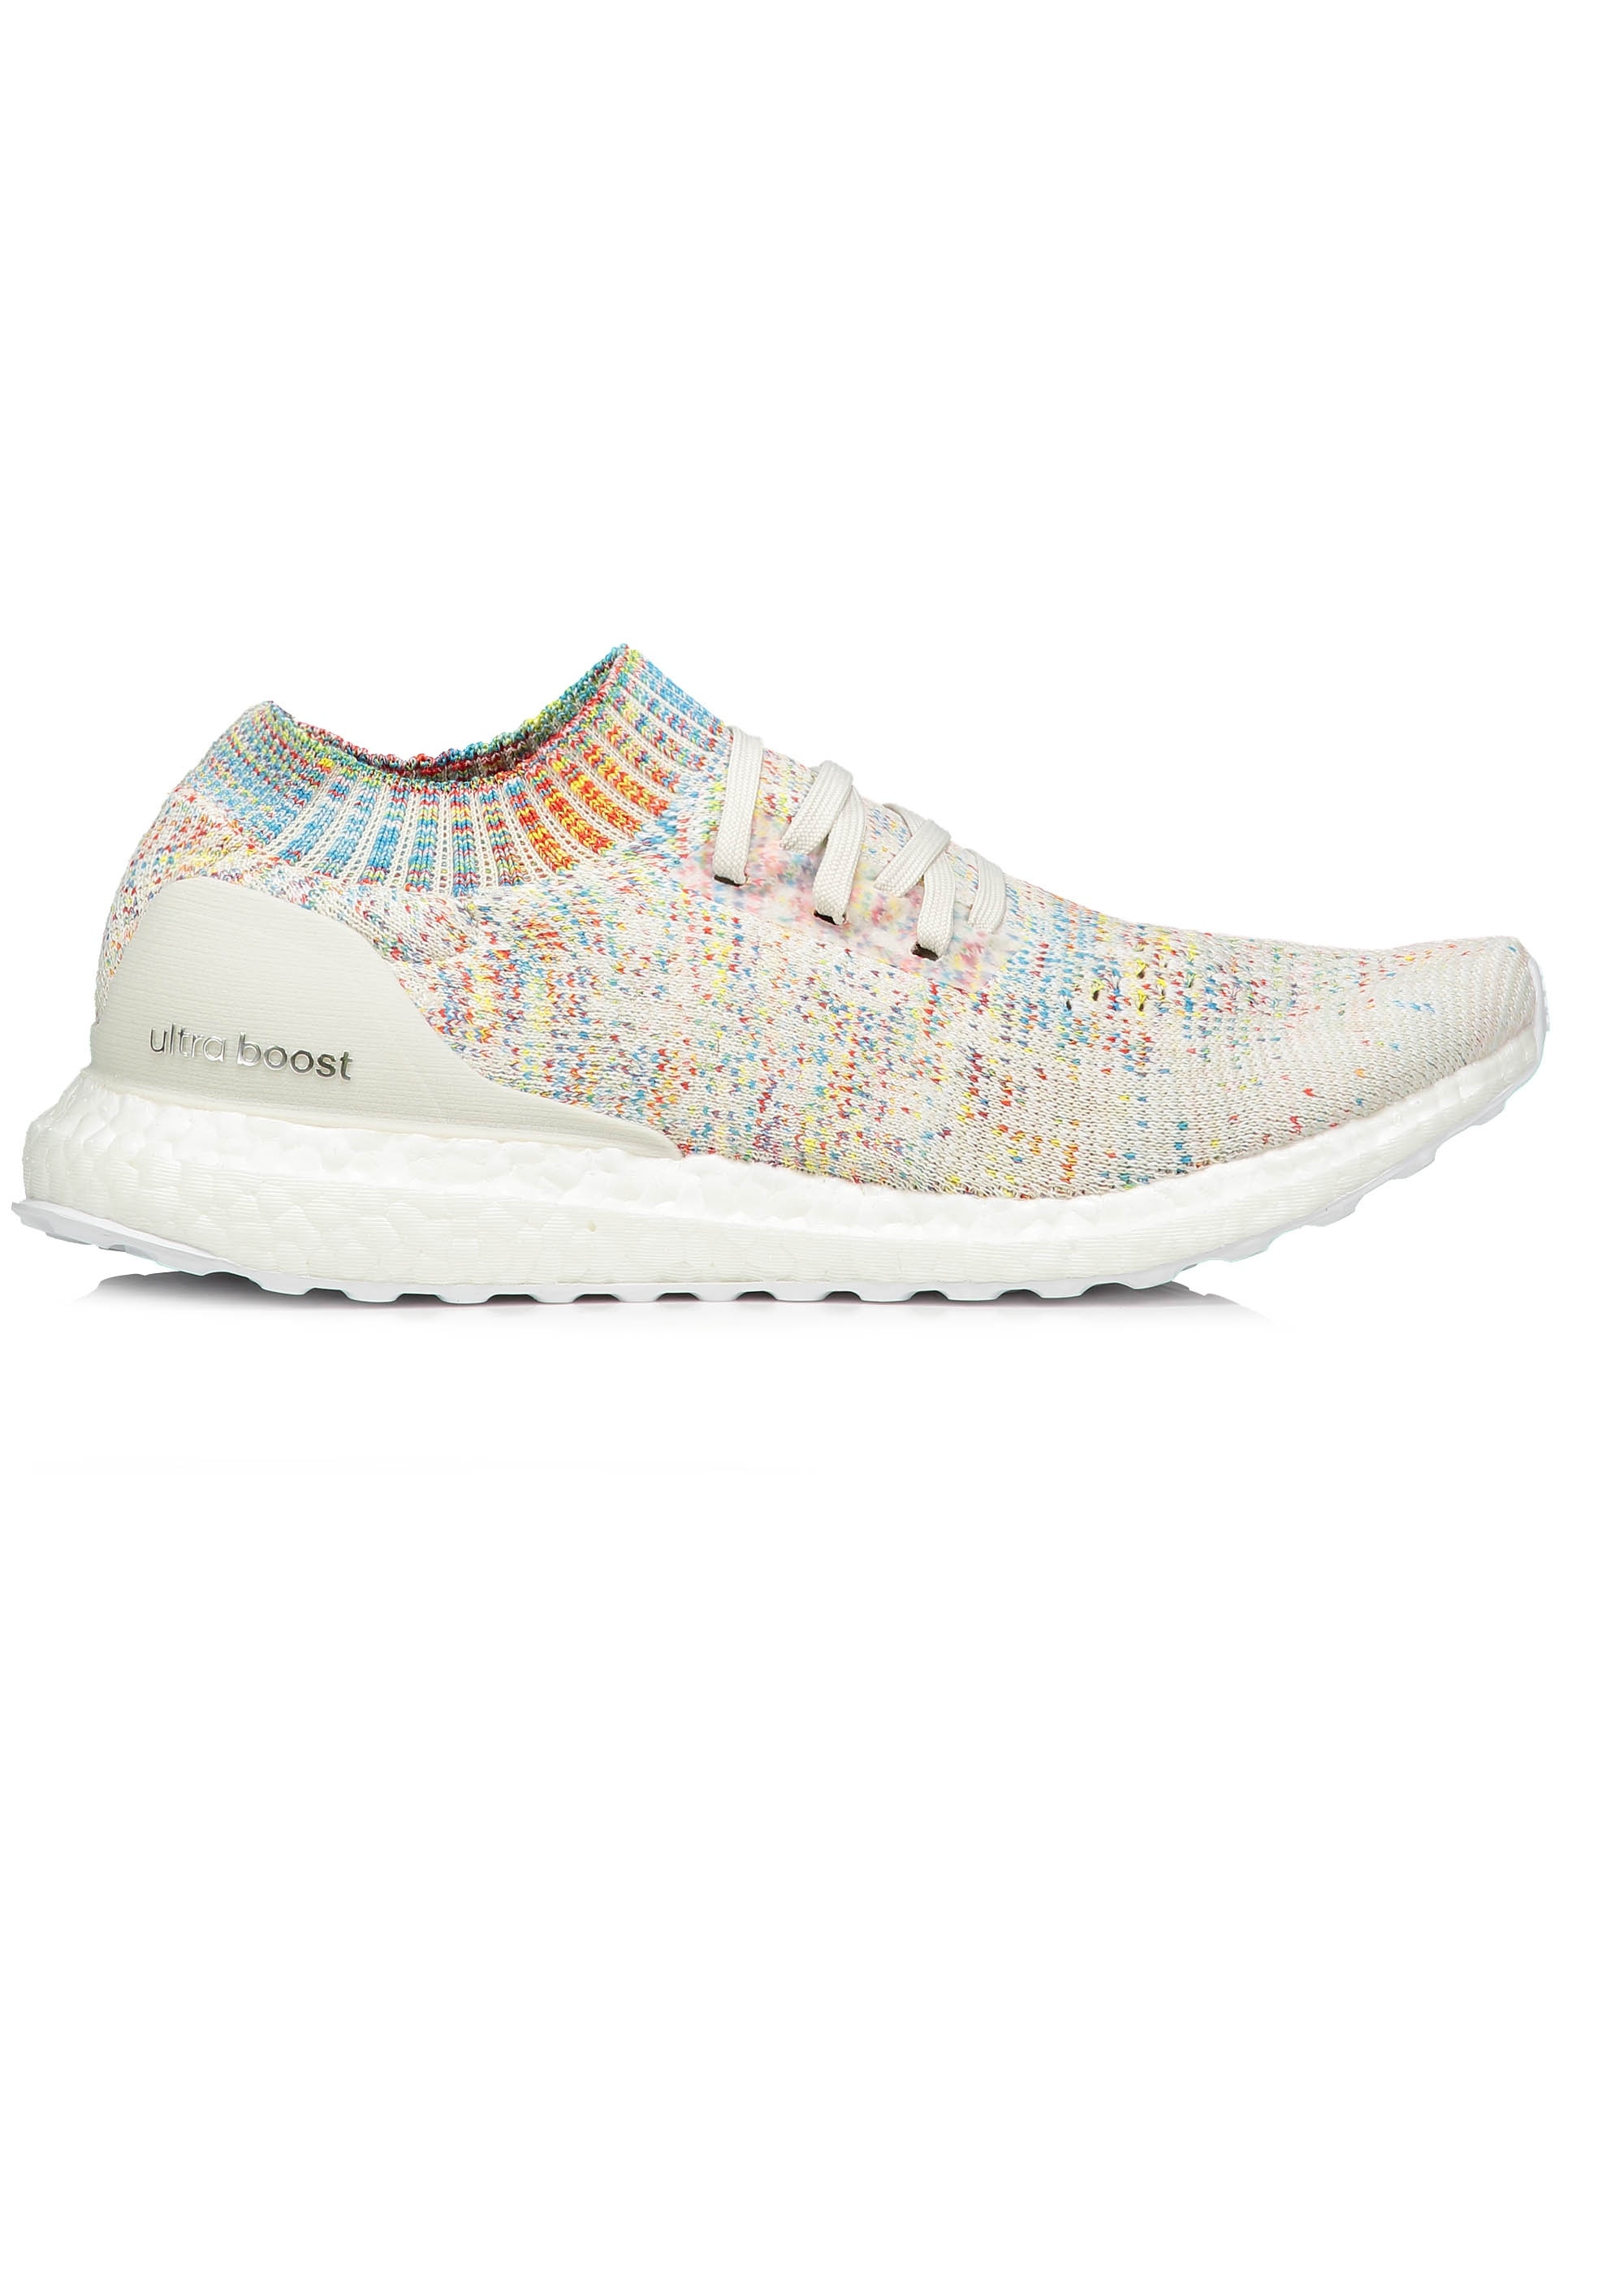 super popular 72dd4 8bd1d Ultraboost Uncaged - White / Multi